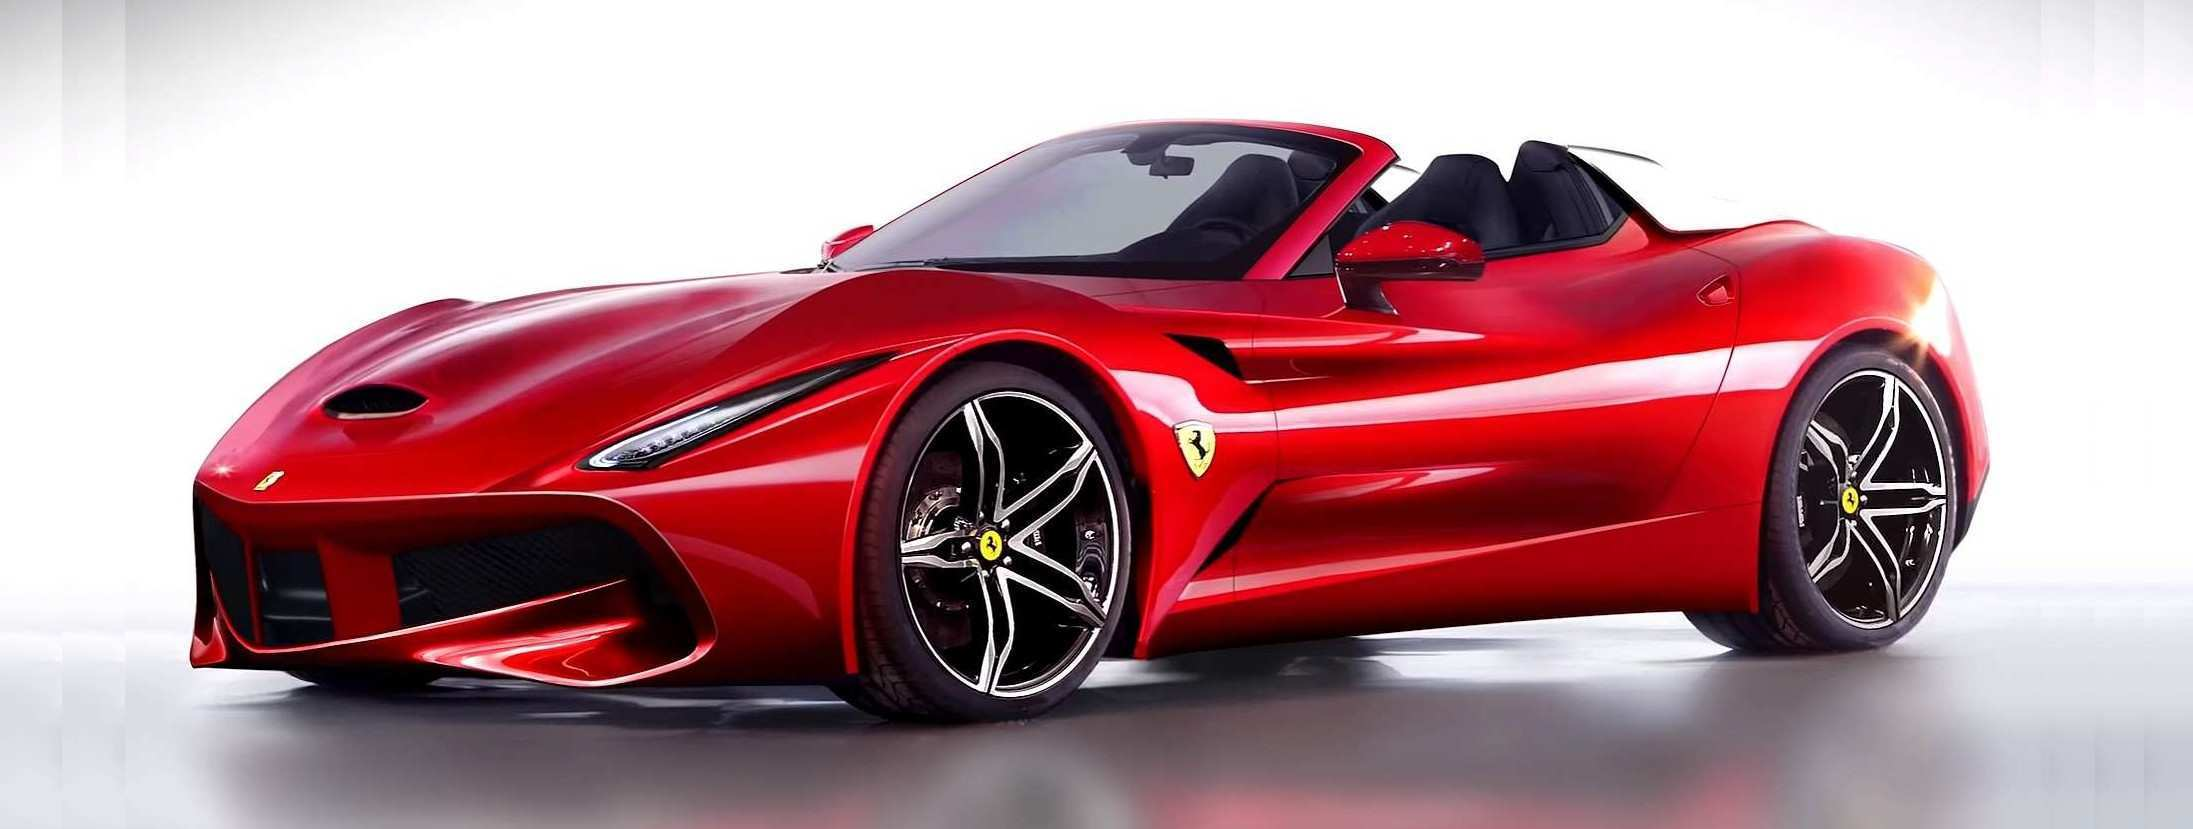 35 All New 2019 Ferrari California Exterior and Interior for 2019 Ferrari California